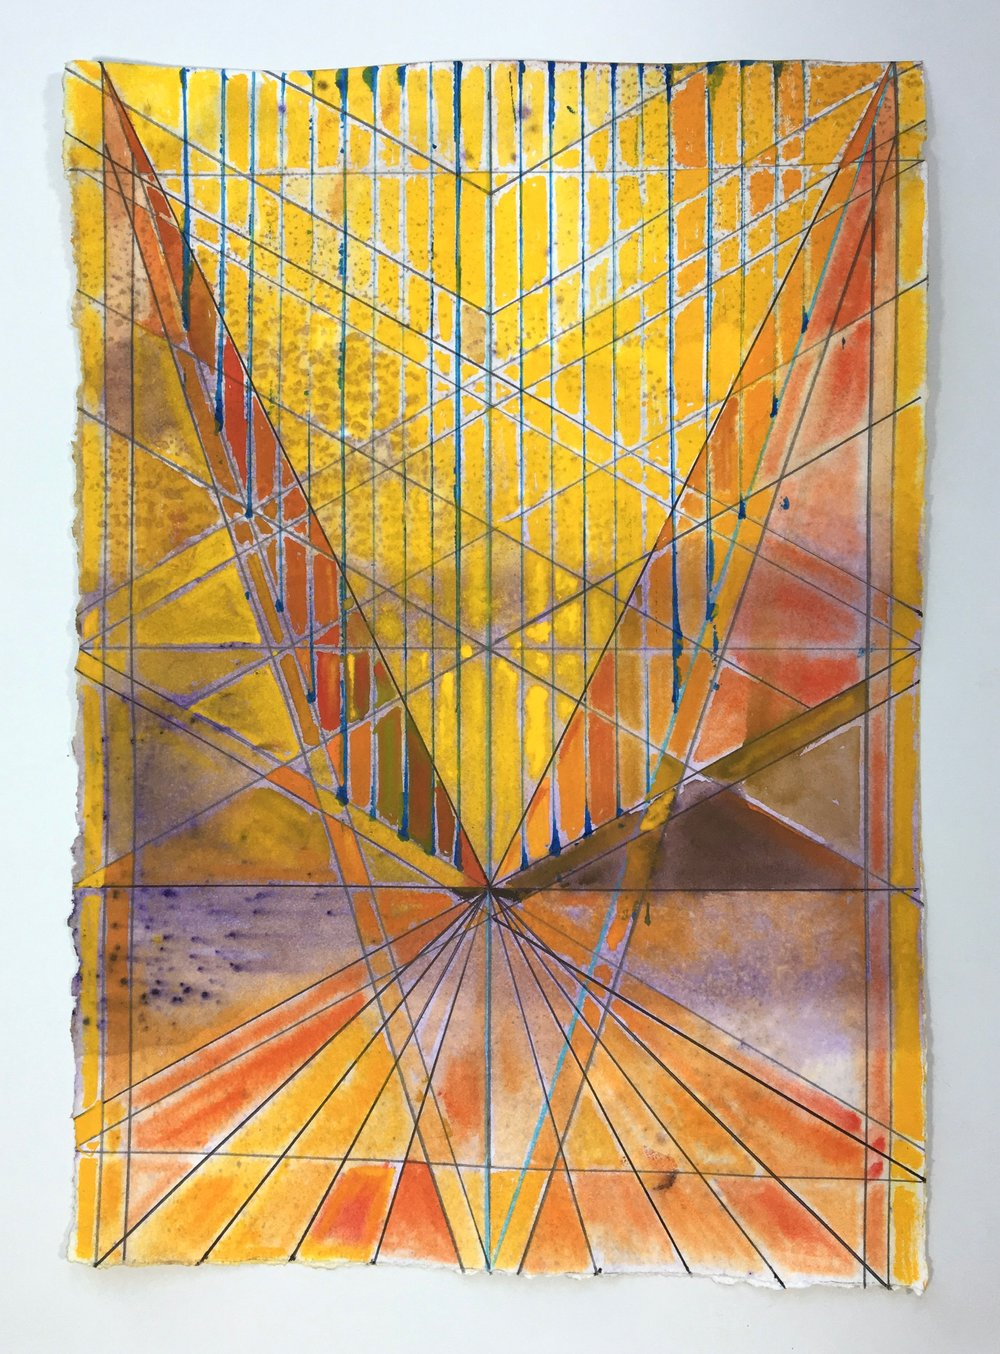 Joe Lloyd, Untitled (Yellow), 2017, watercolor on paper, 14 x 11 inches